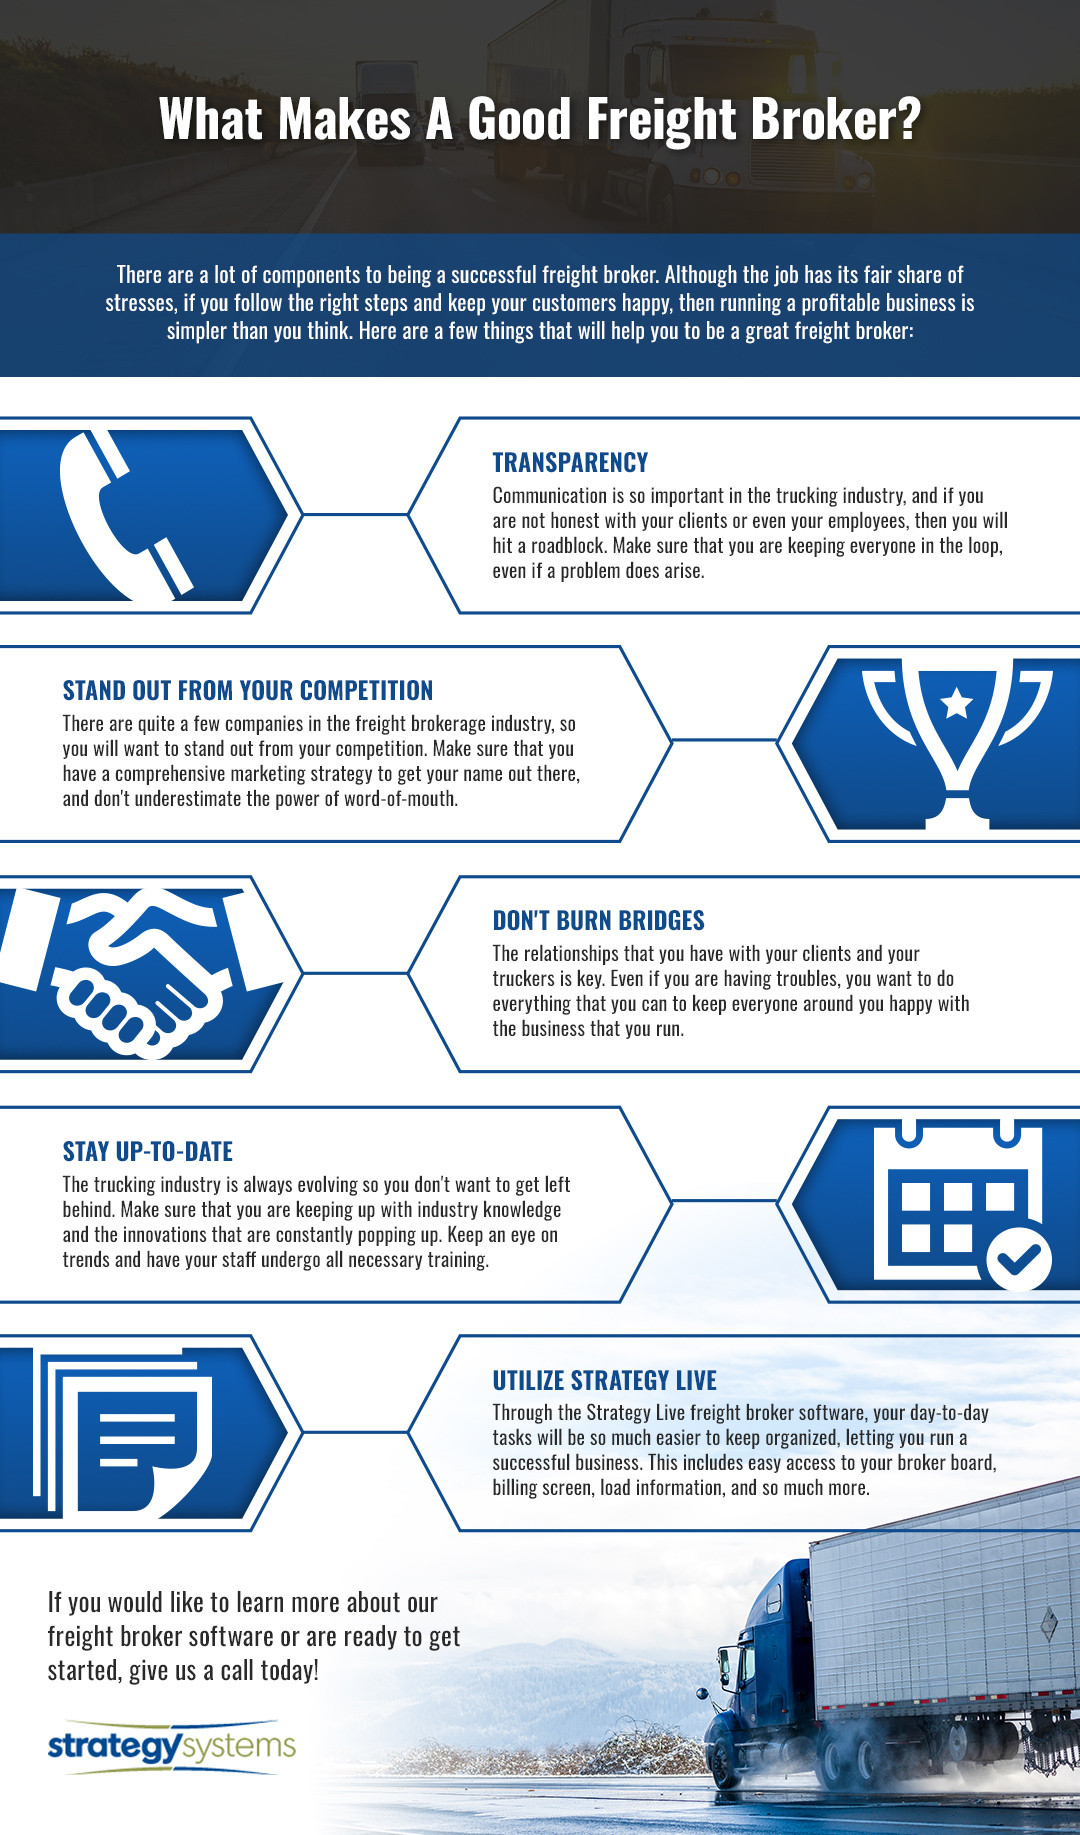 What Makes A Good Freight Broker Infographic